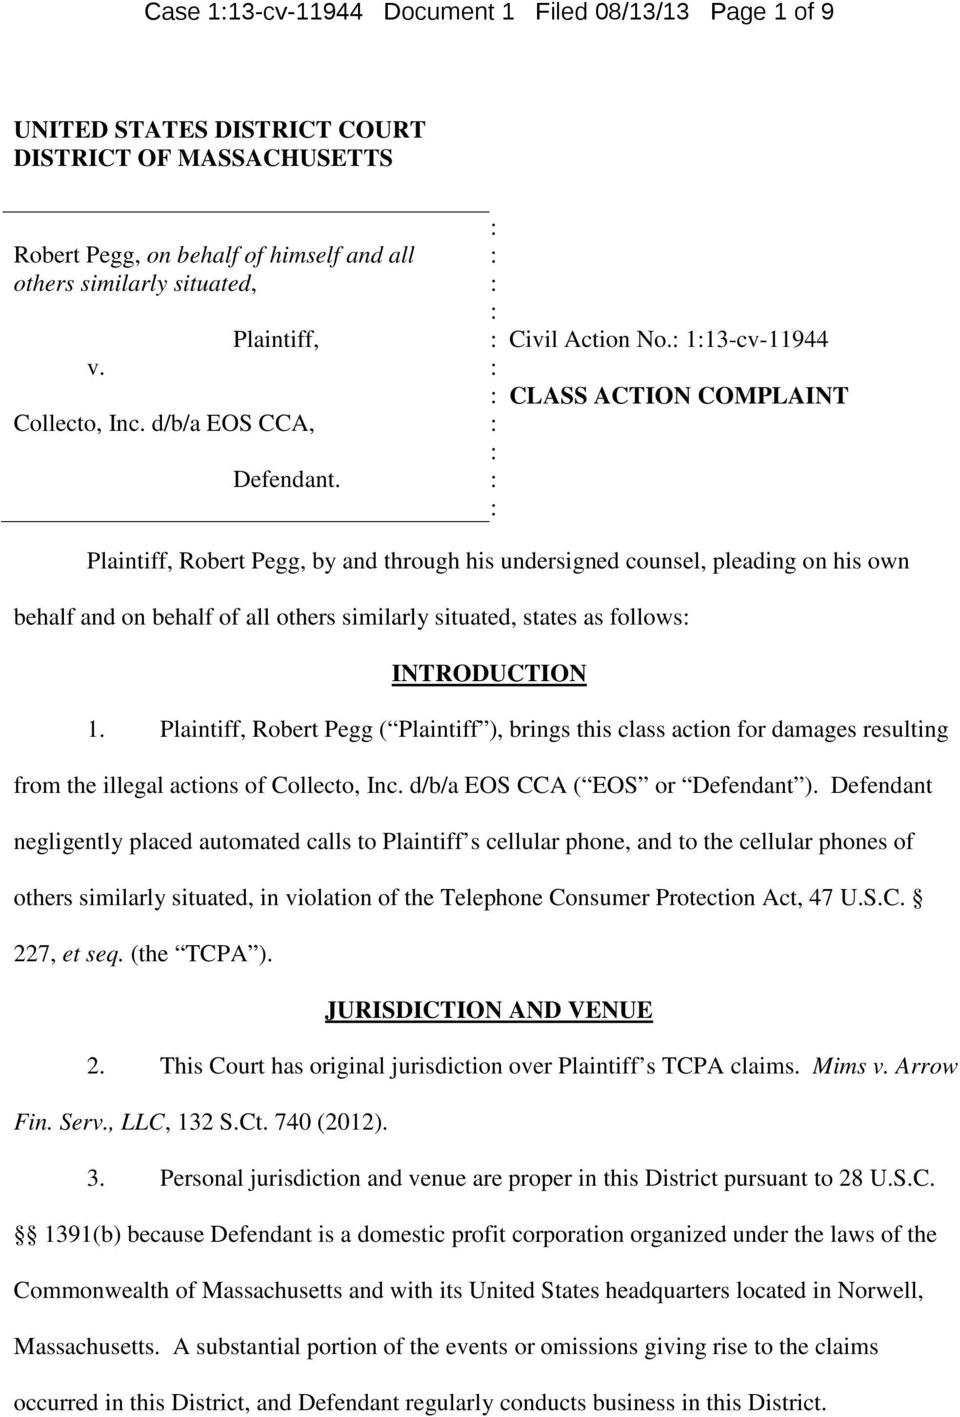 113-cv-11944 CLASS ACTION COMPLAINT Plaintiff, Robert Pegg, by and through his undersigned counsel, pleading on his own behalf and on behalf of all others similarly situated, states as follows